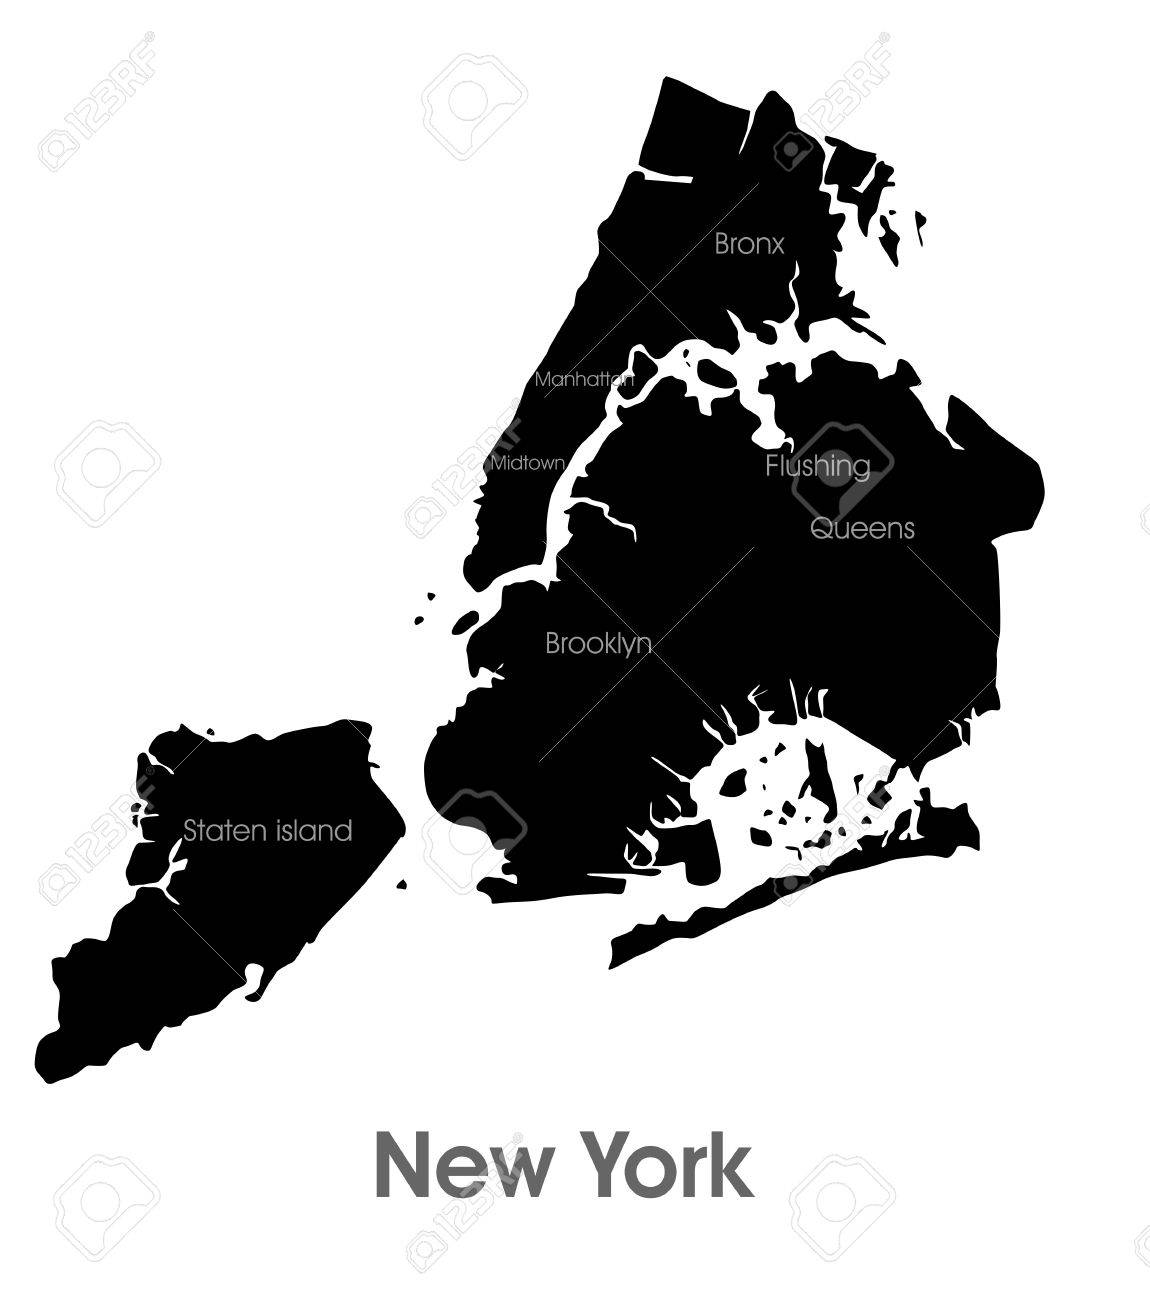 New York City Map Royalty Free Cliparts Vectors And Stock